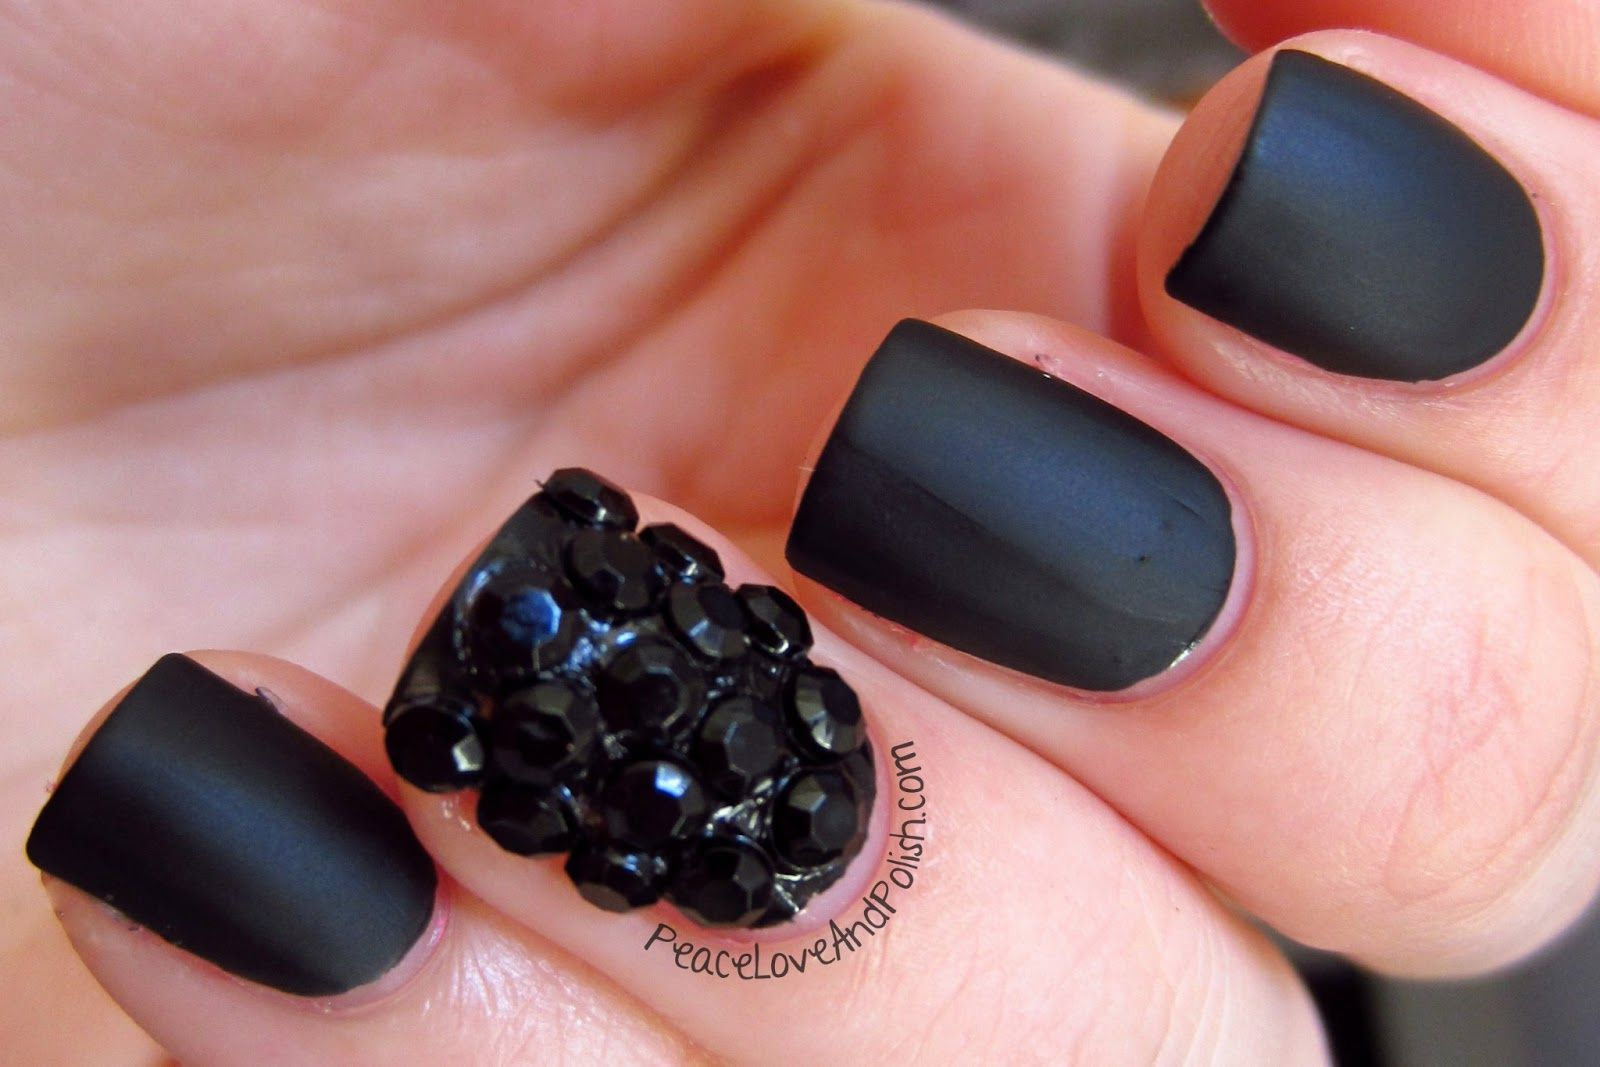 Awesome Opi Black Nail Designs Collection - Nail Art Ideas ...